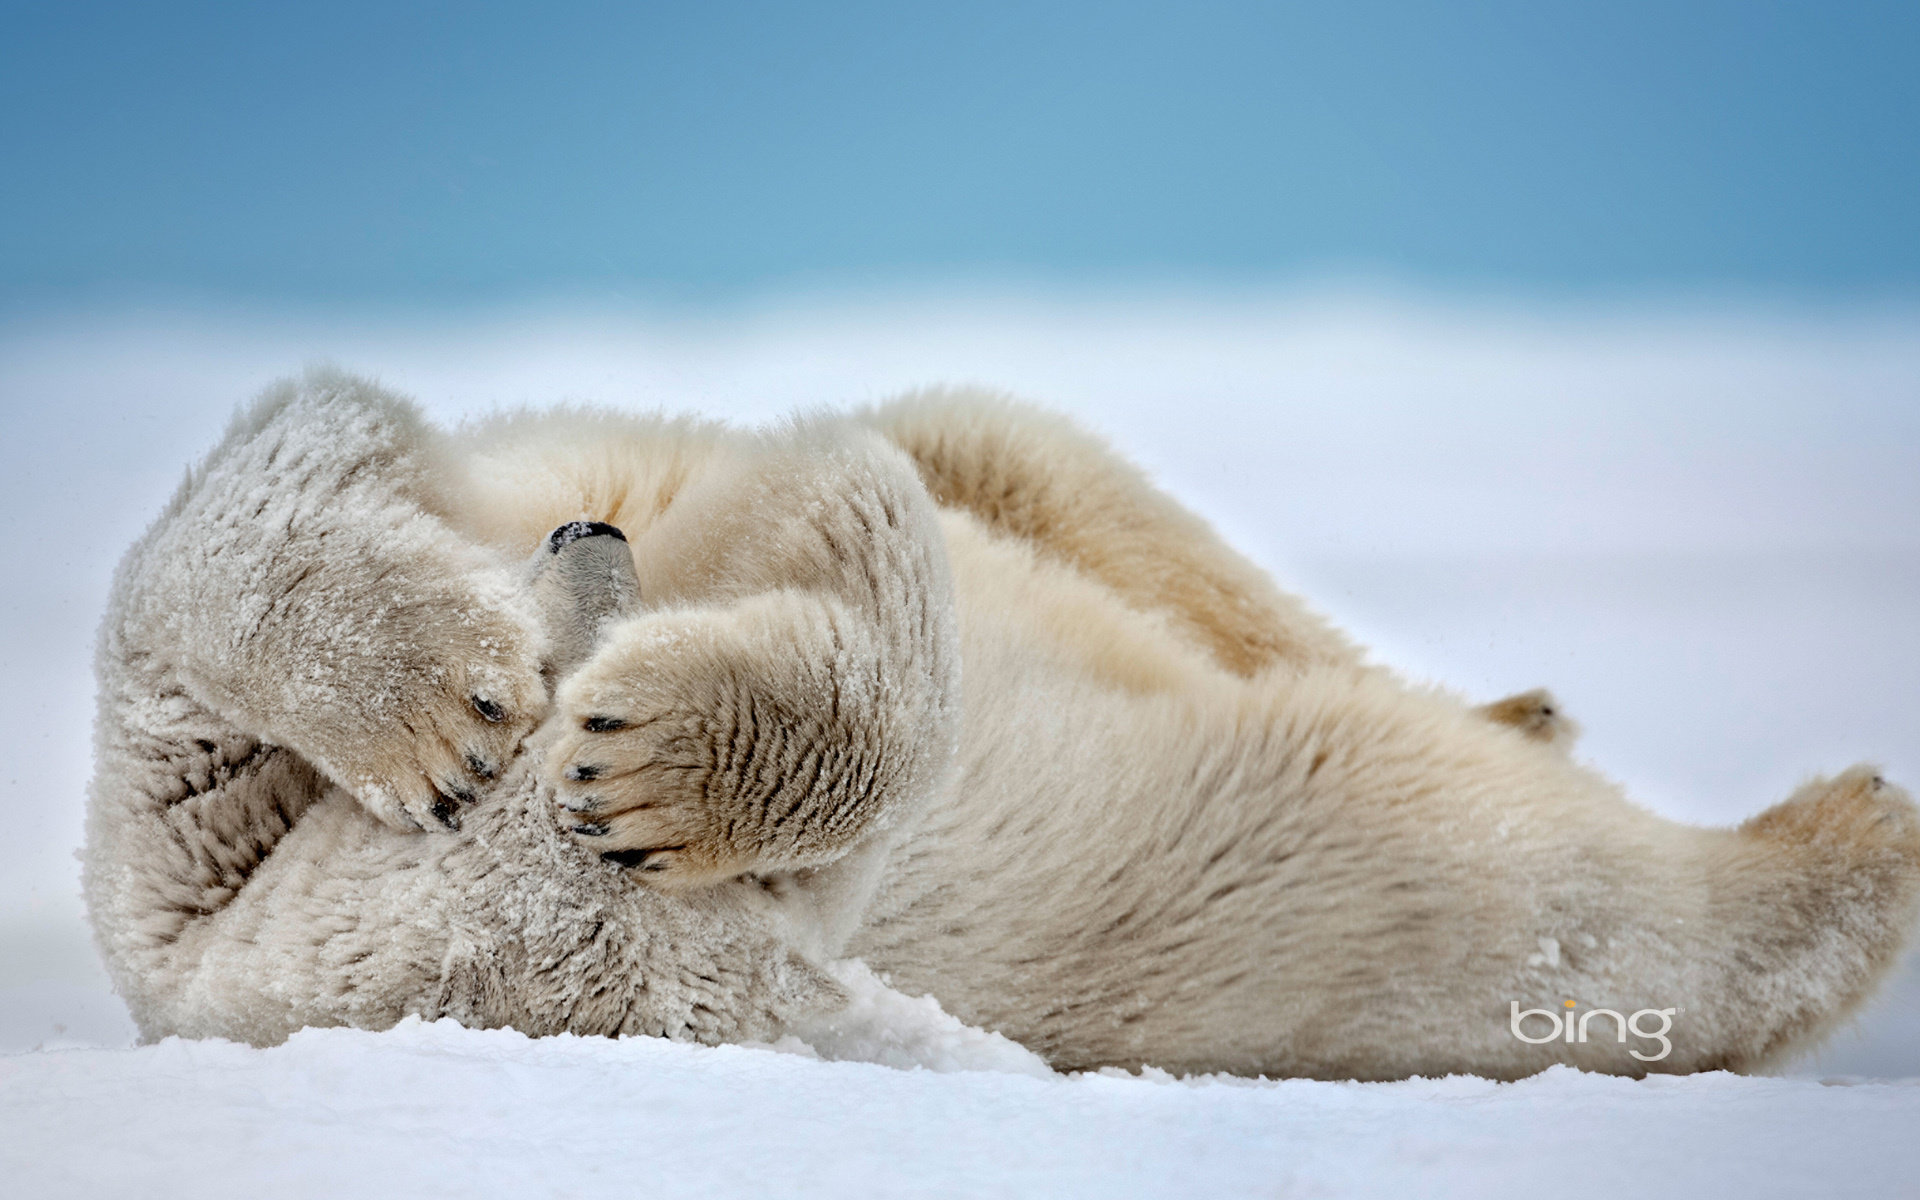 Download hd 1920x1200 Polar Bear desktop wallpaper ID:359731 for free